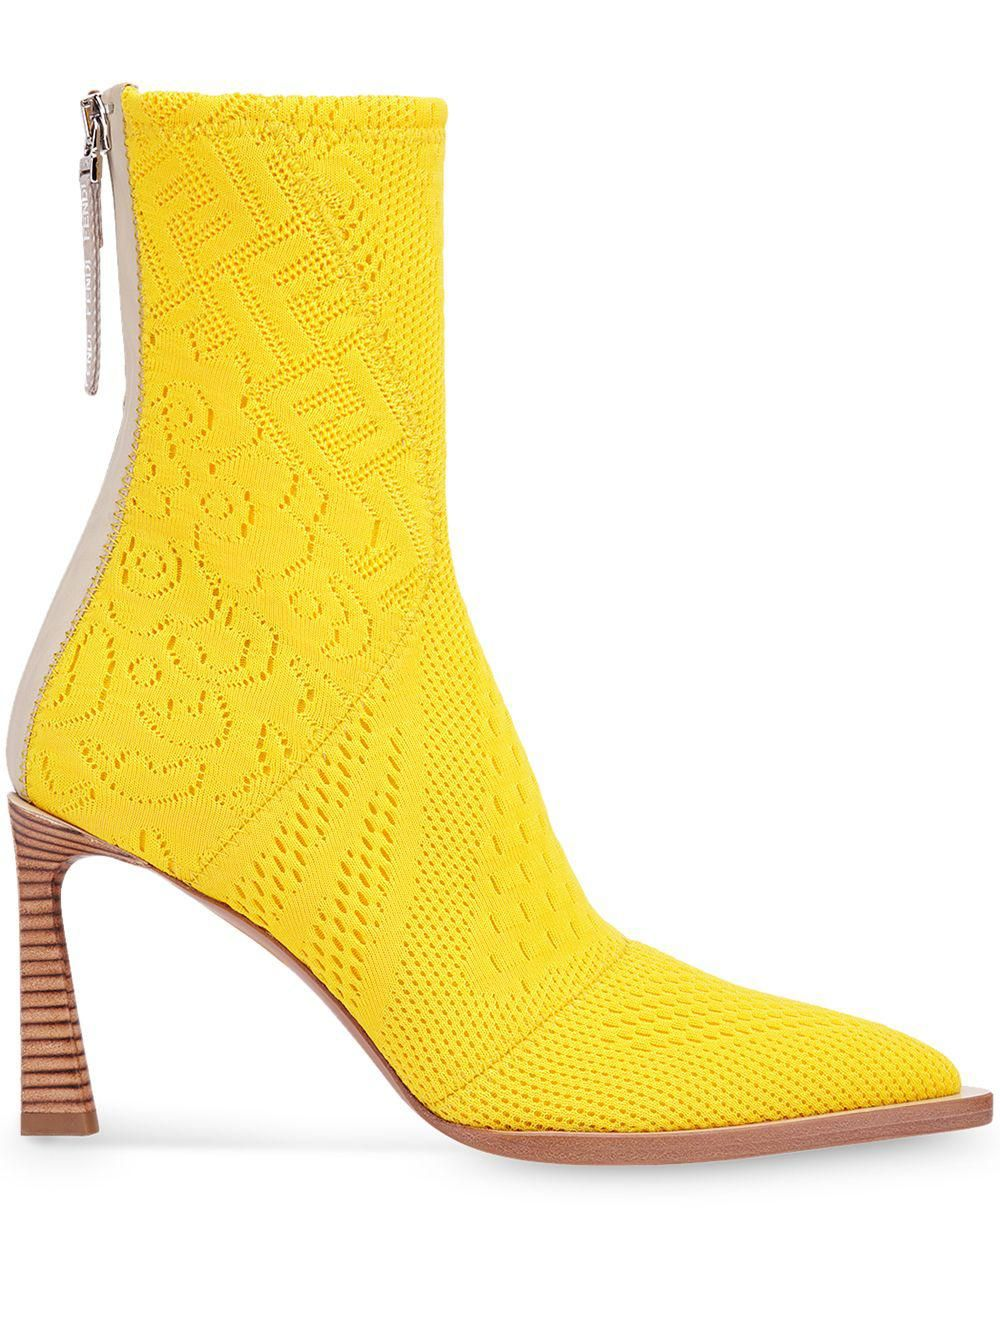 Fframe Jacquard Pointed-toe Ankle Boots